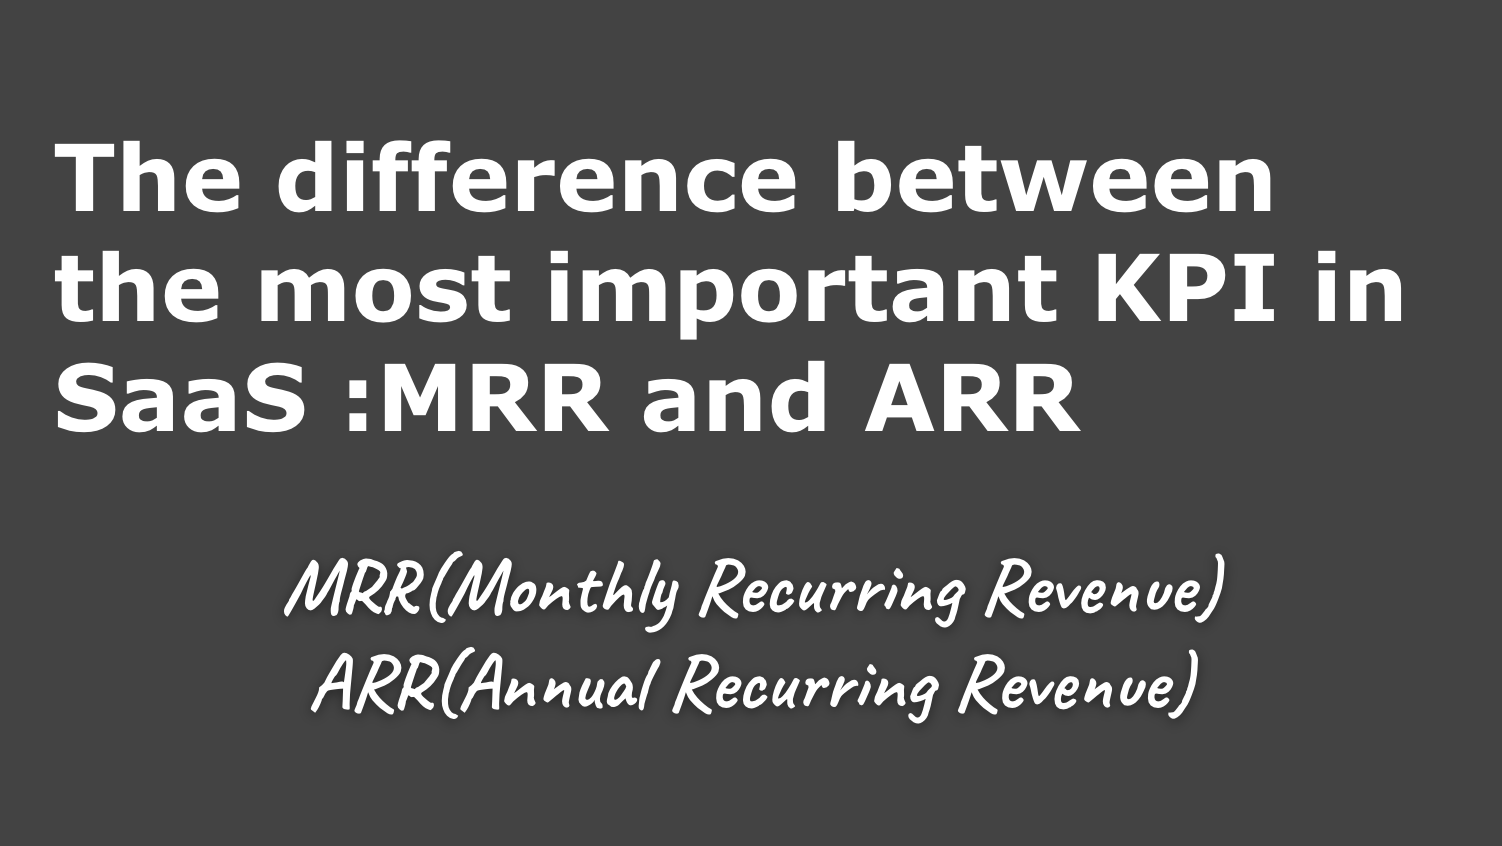 saaslife_The difference between the most important KPI in SaaS MRR and ARR